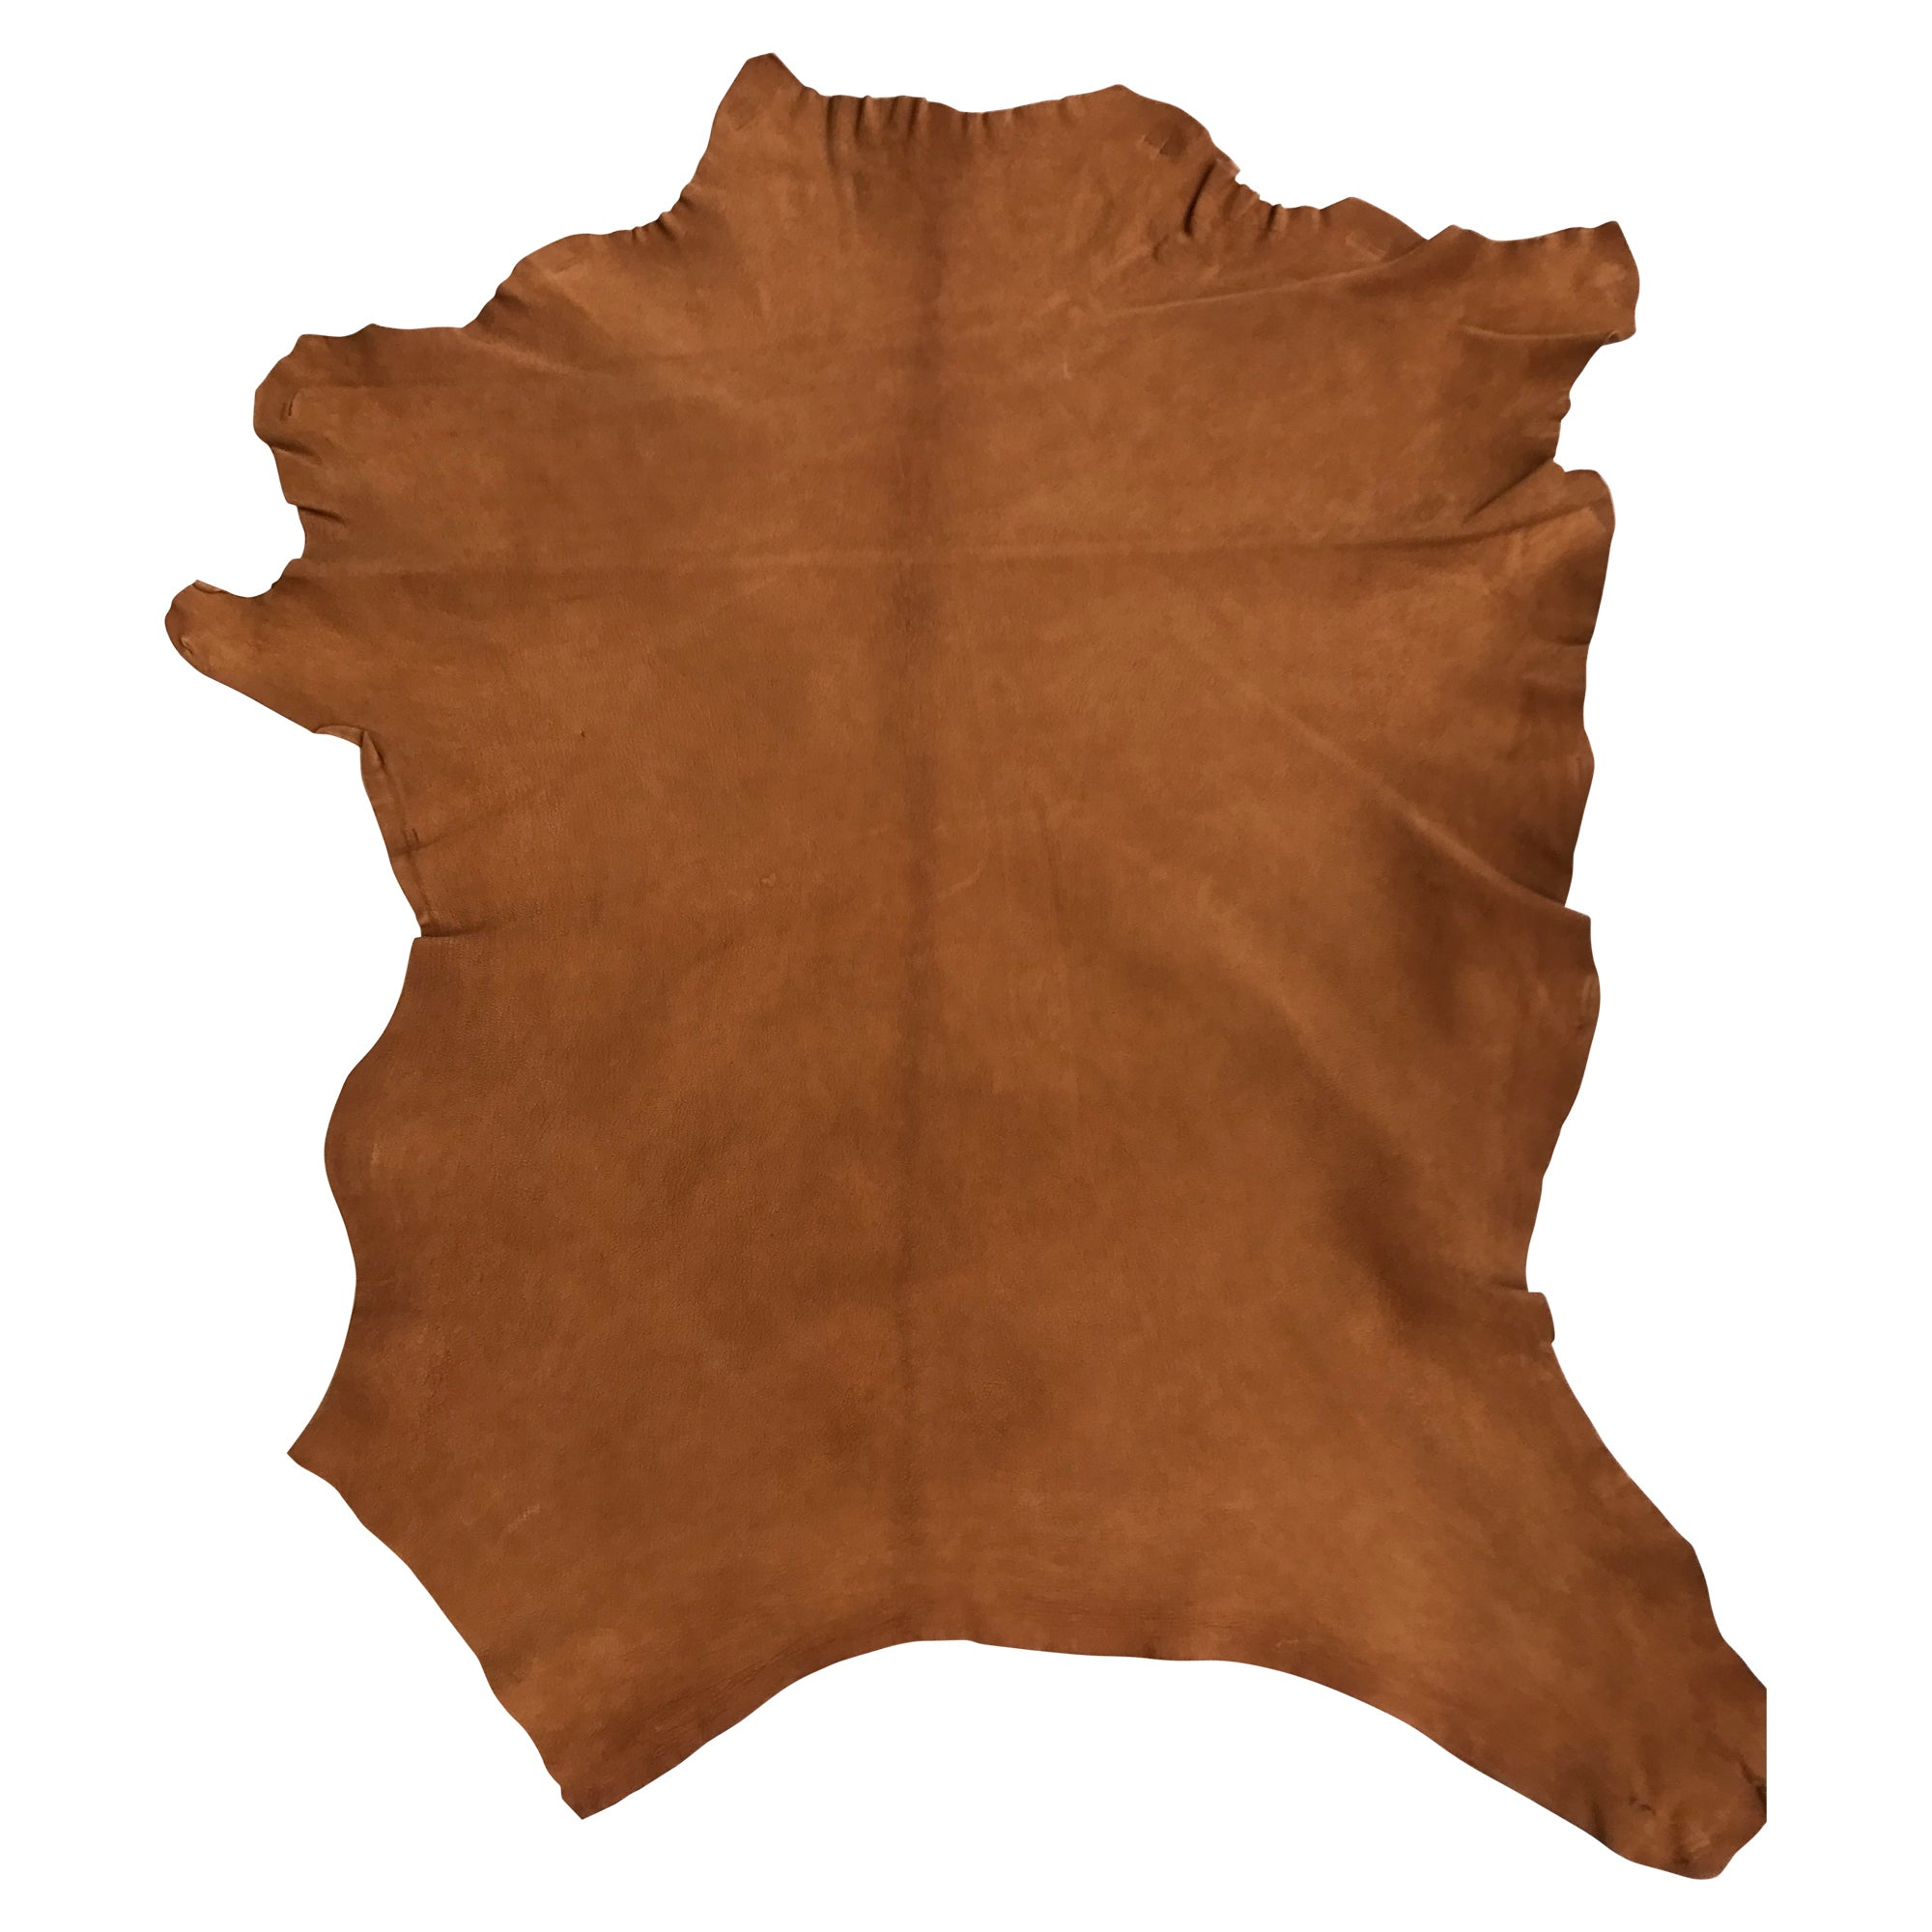 Buy Genuine Leather Hides for Sewing Projects